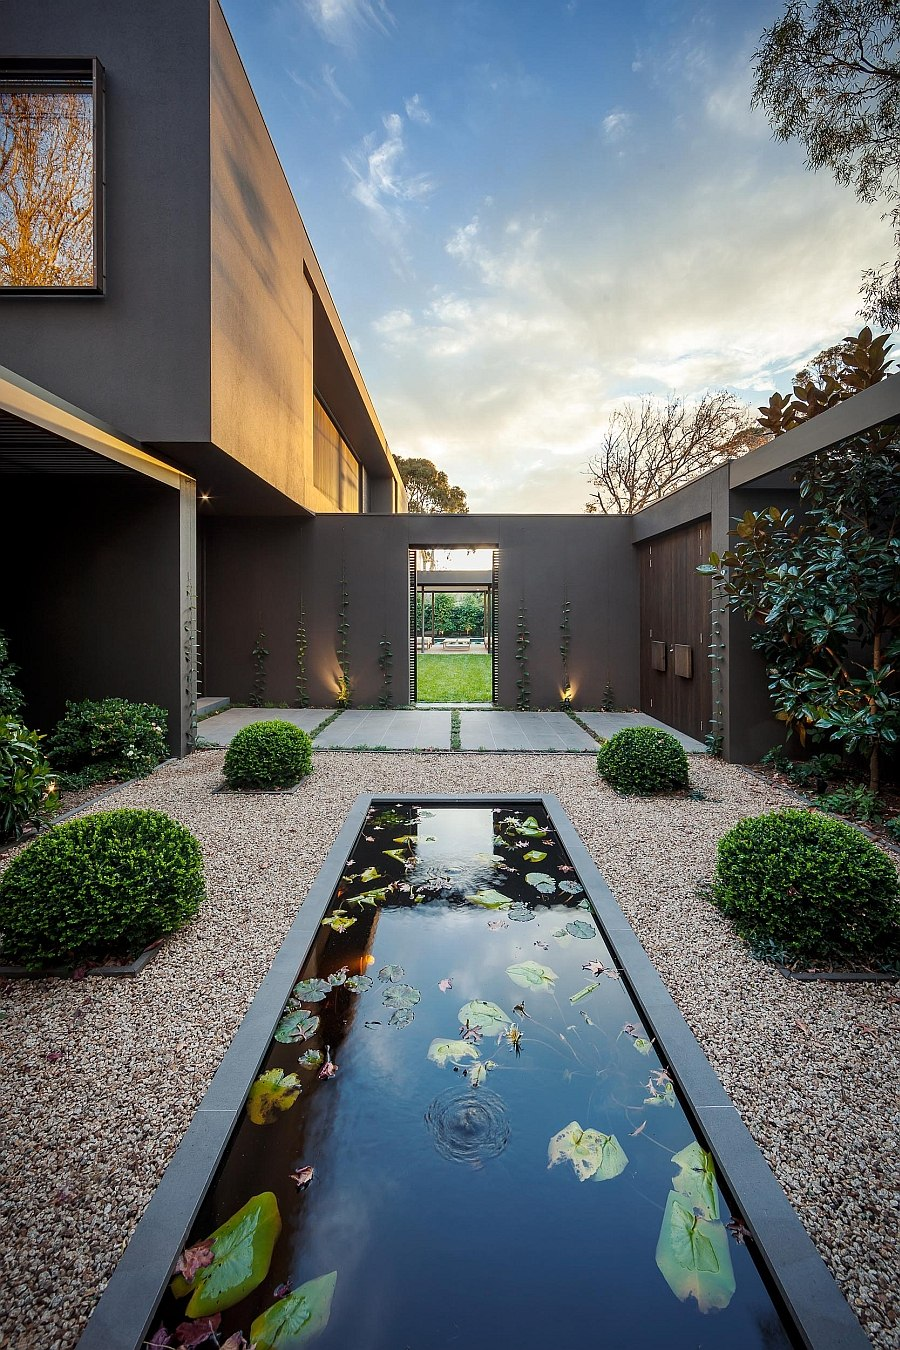 Modern landscape with a relaxing pond at its heart